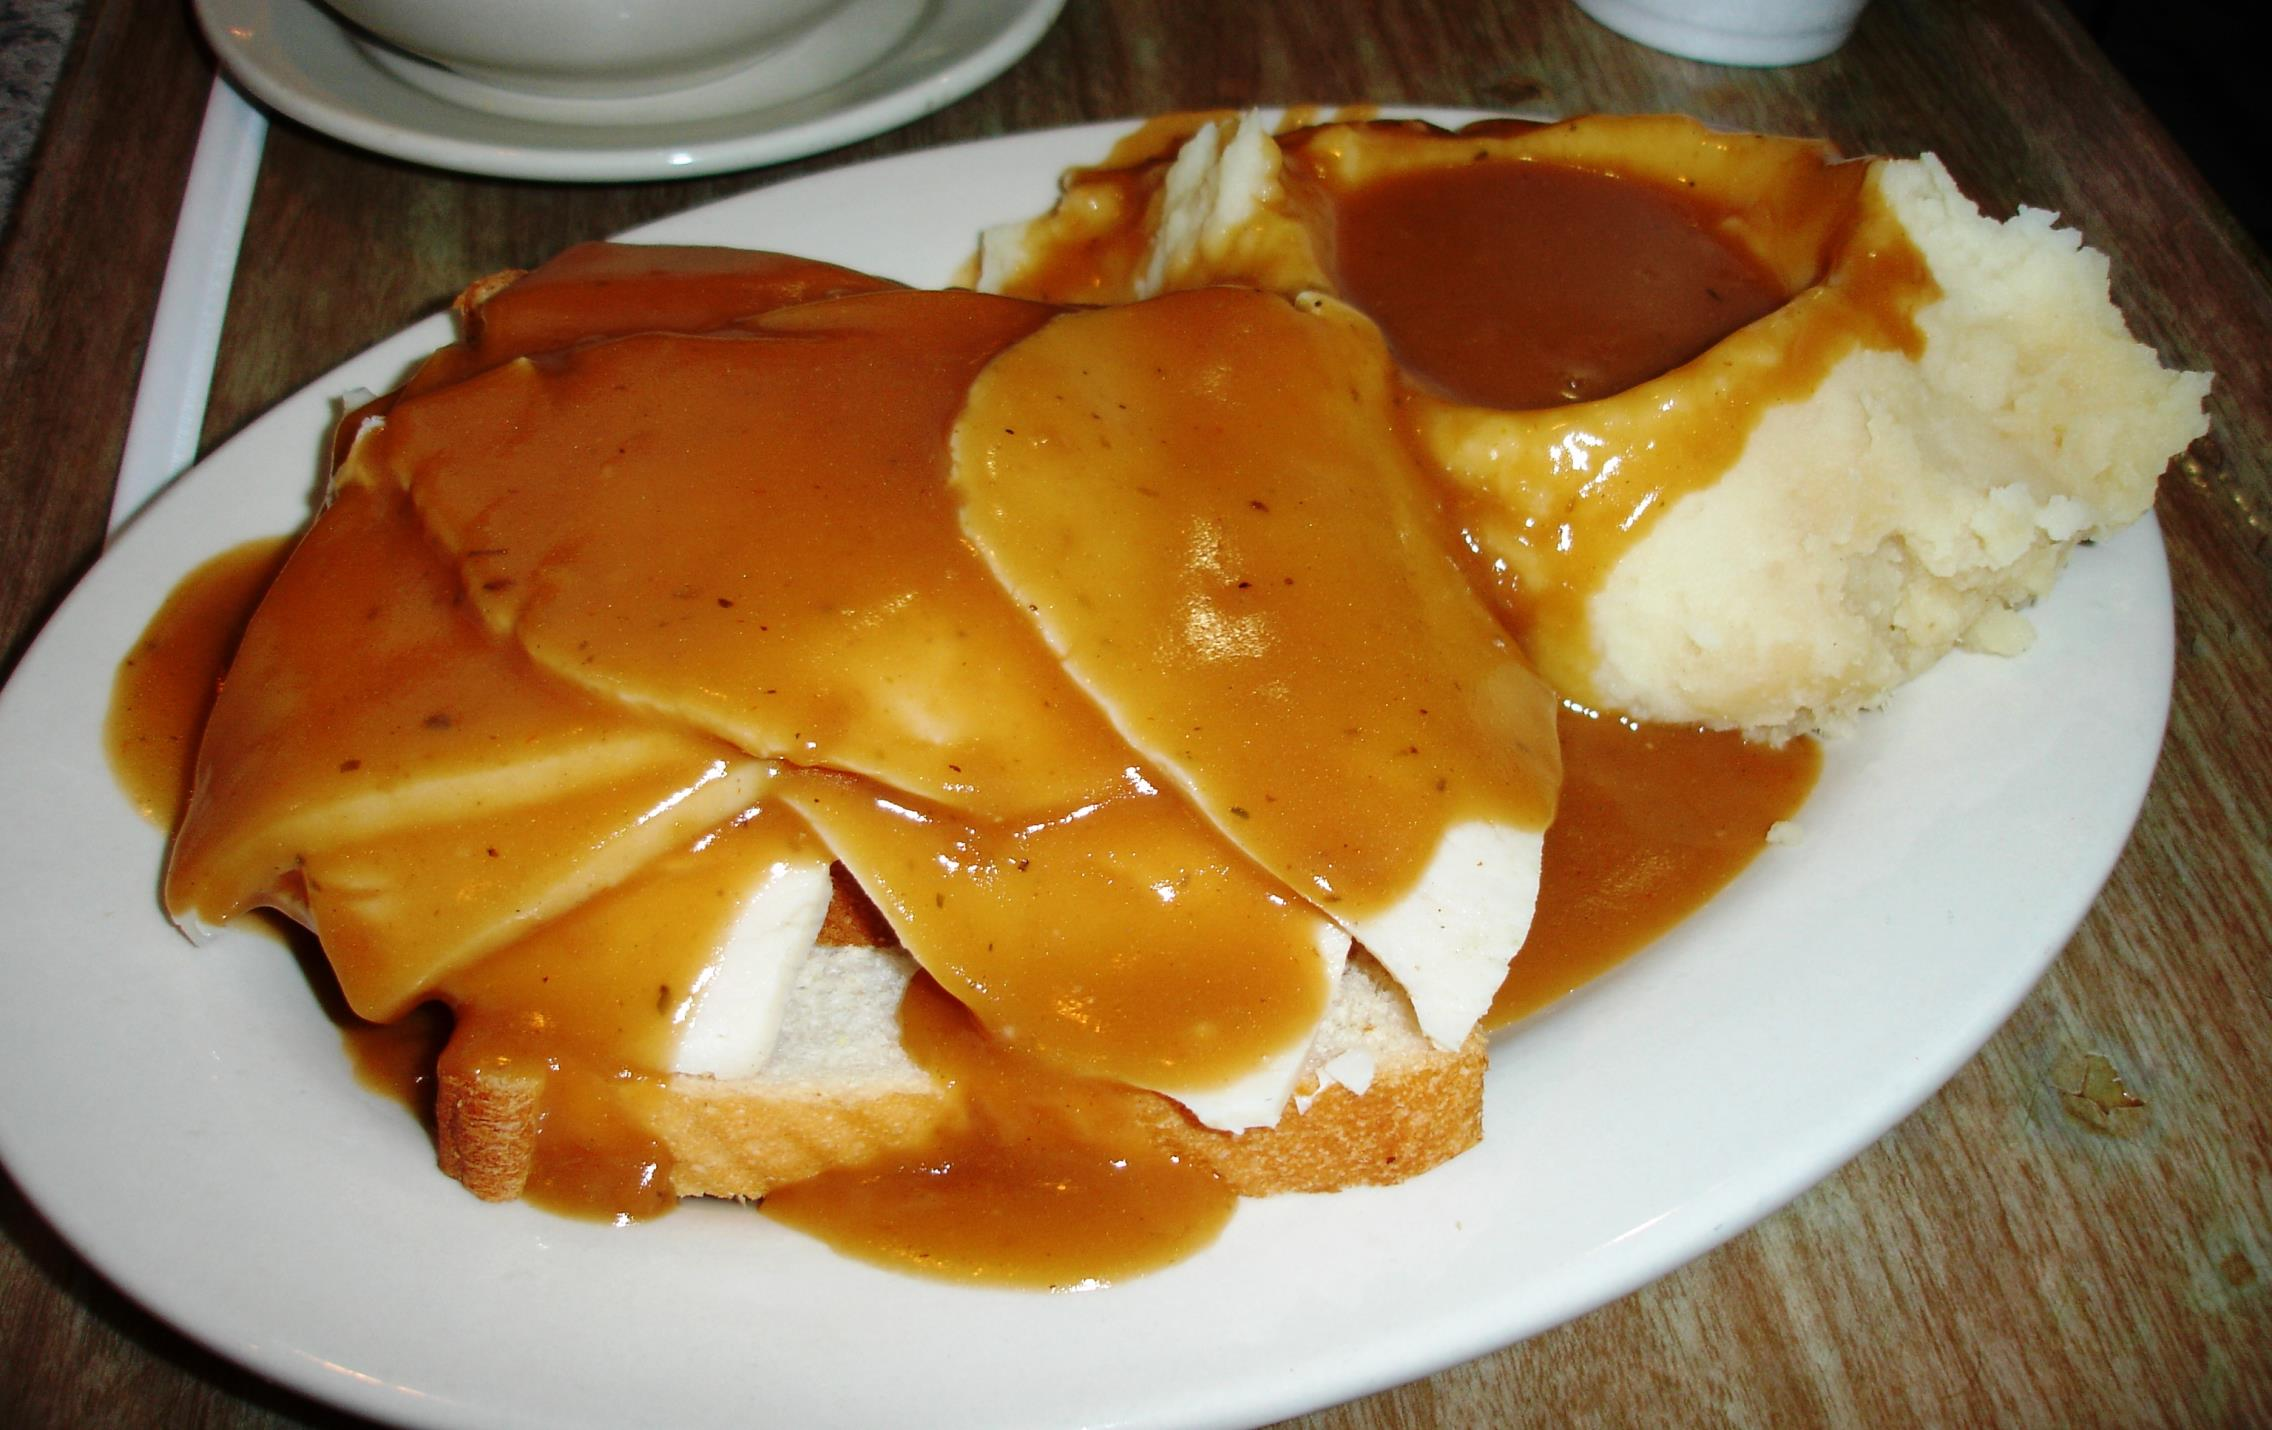 The hot turkey sandwich is made with a generous portion of real sliced turkey breast. With the potatoes and gravy, it comes at the bargain price of $5.25.